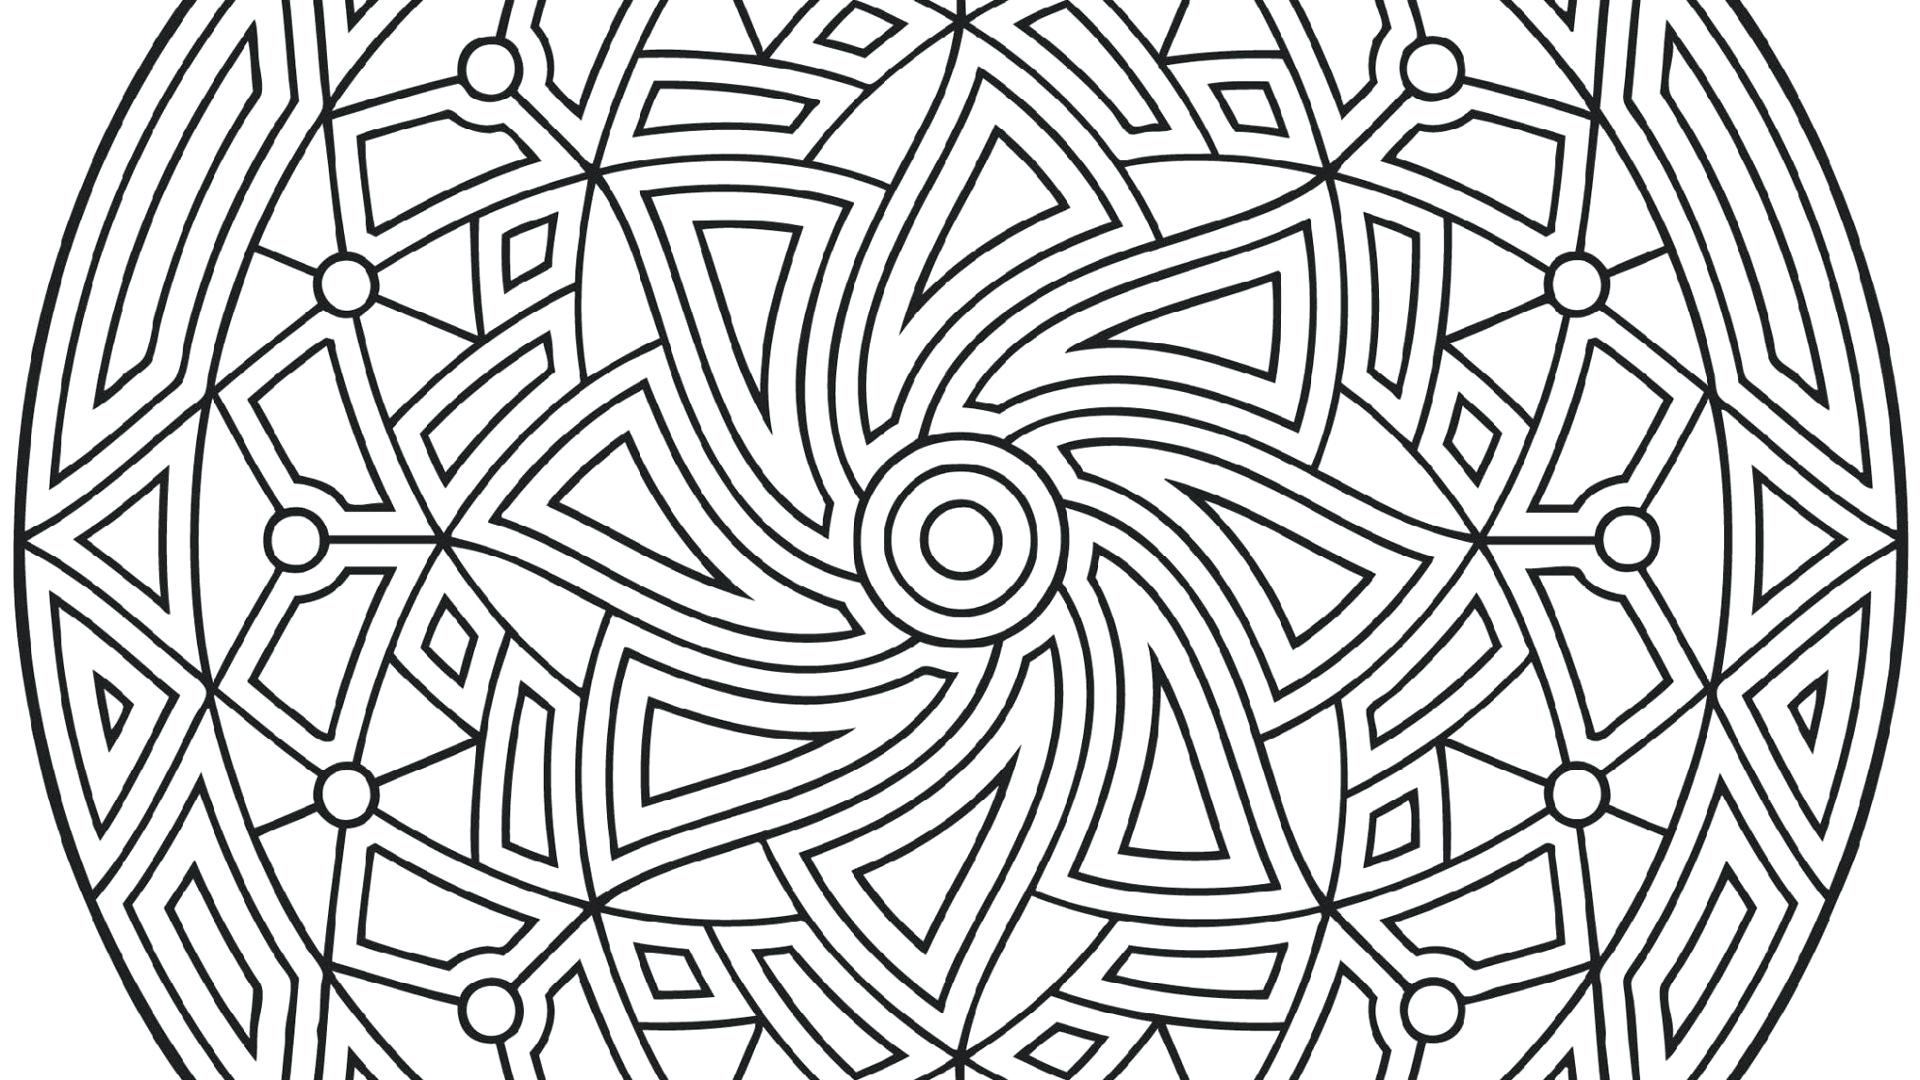 1920x1080 Coloring Dot Art Coloring Pages